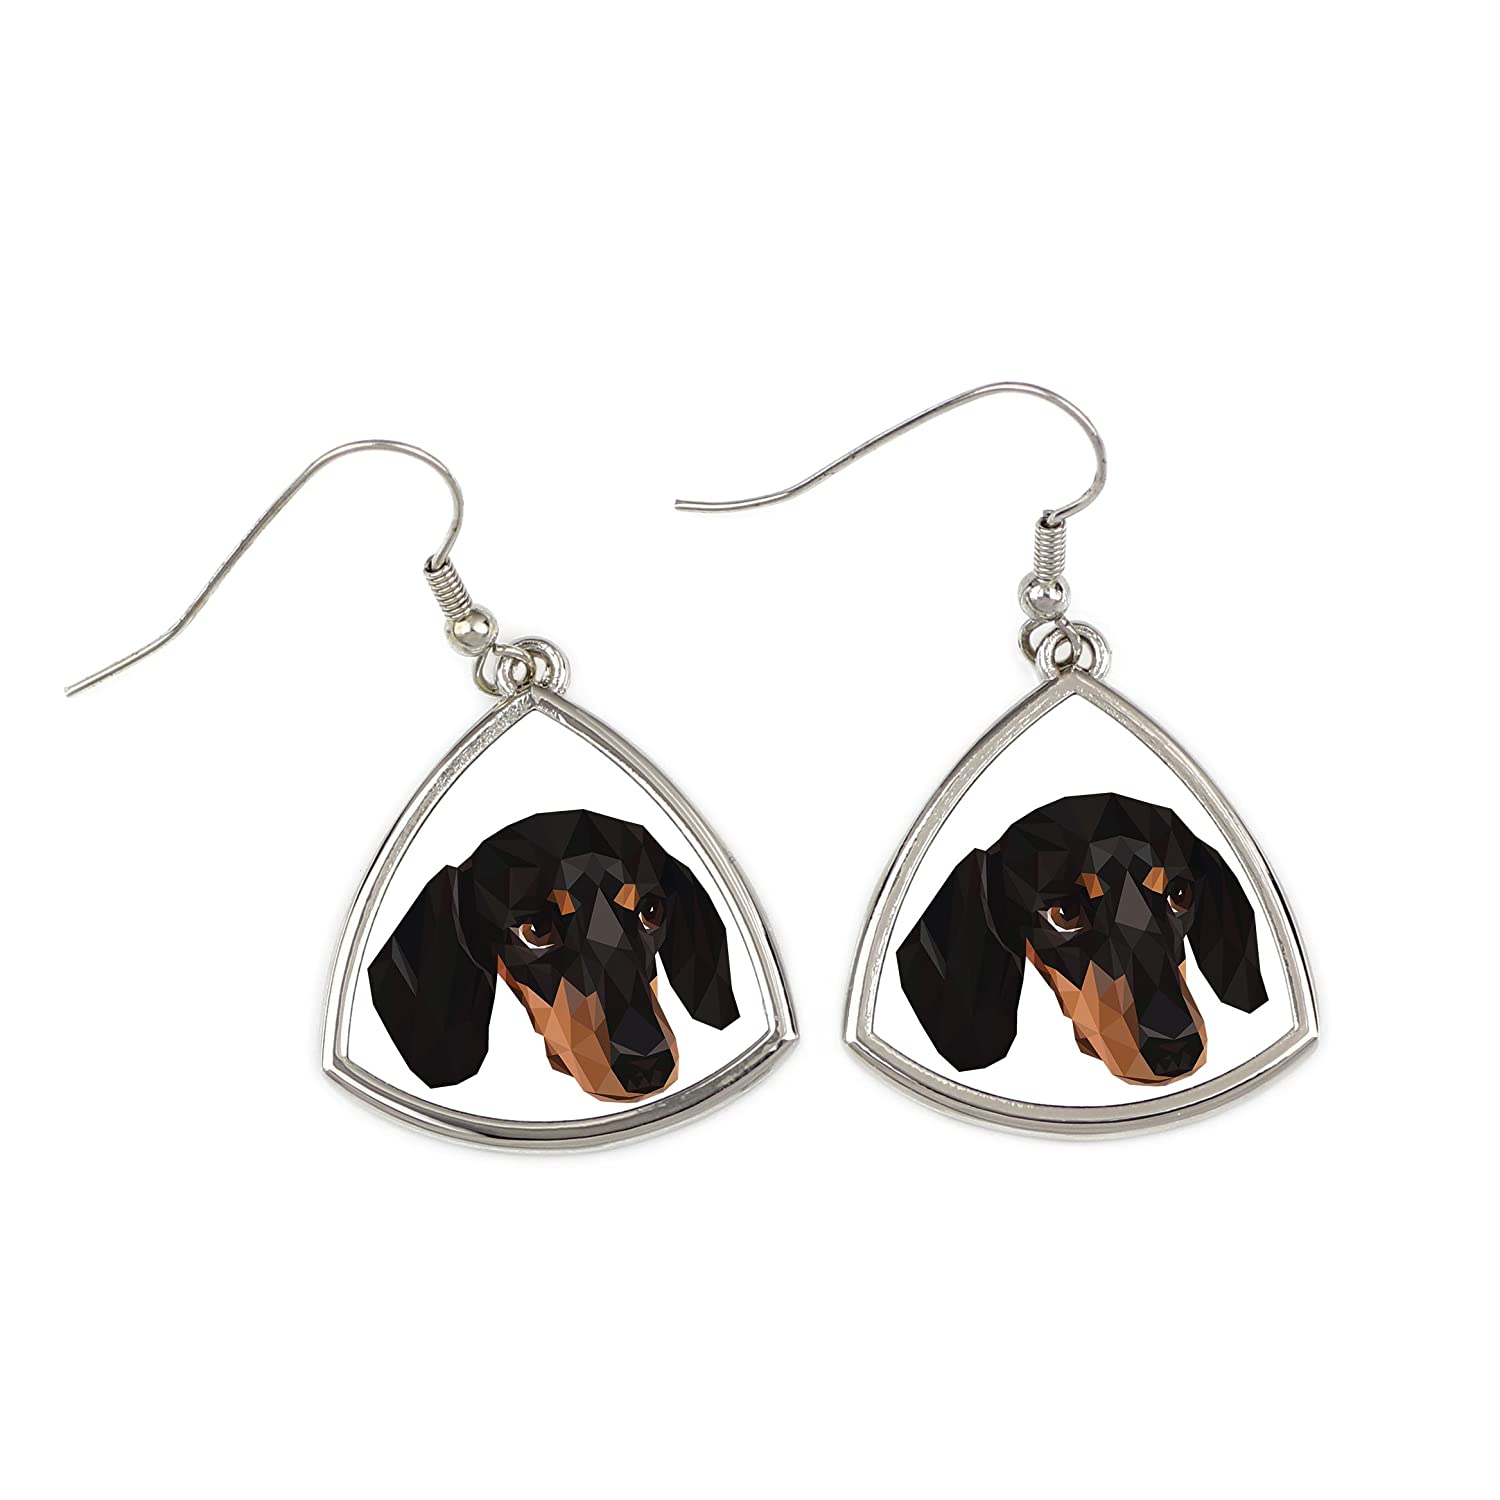 Dachshund Smoothhaired, collection of earrings with purebred dog, geometric